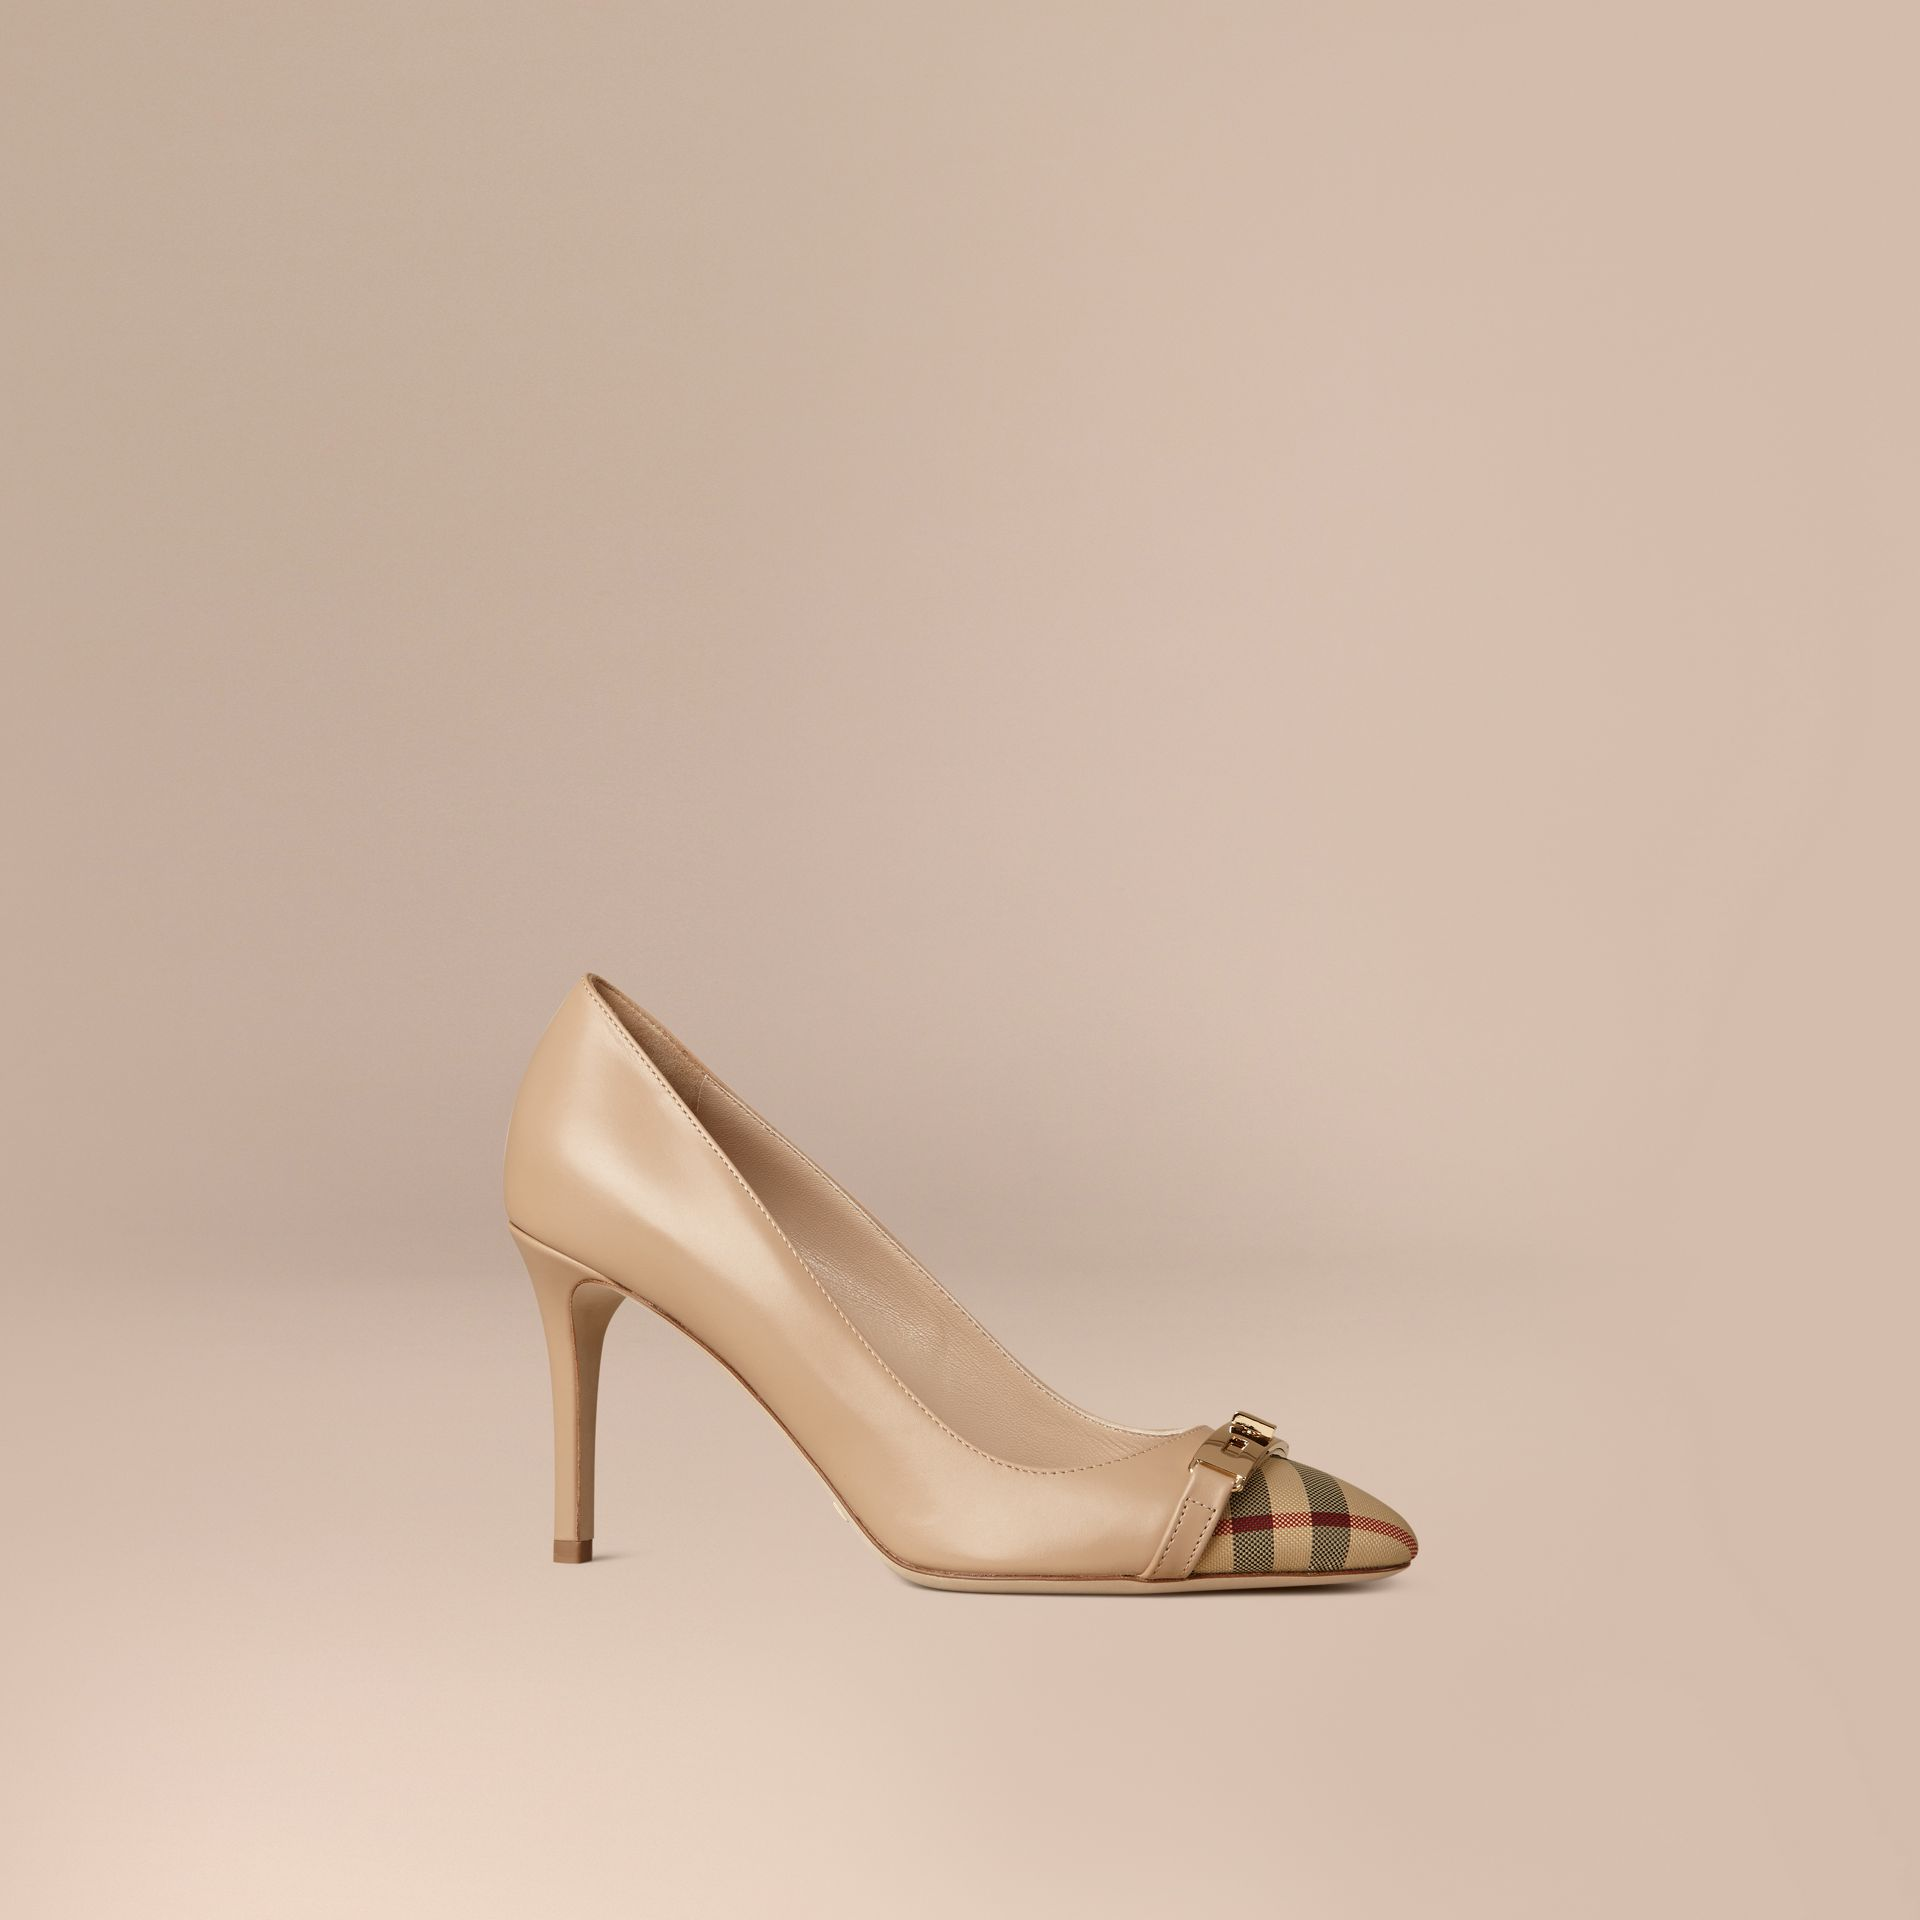 Light nude Horseferry Check Leather Pumps Light Nude - gallery image 1